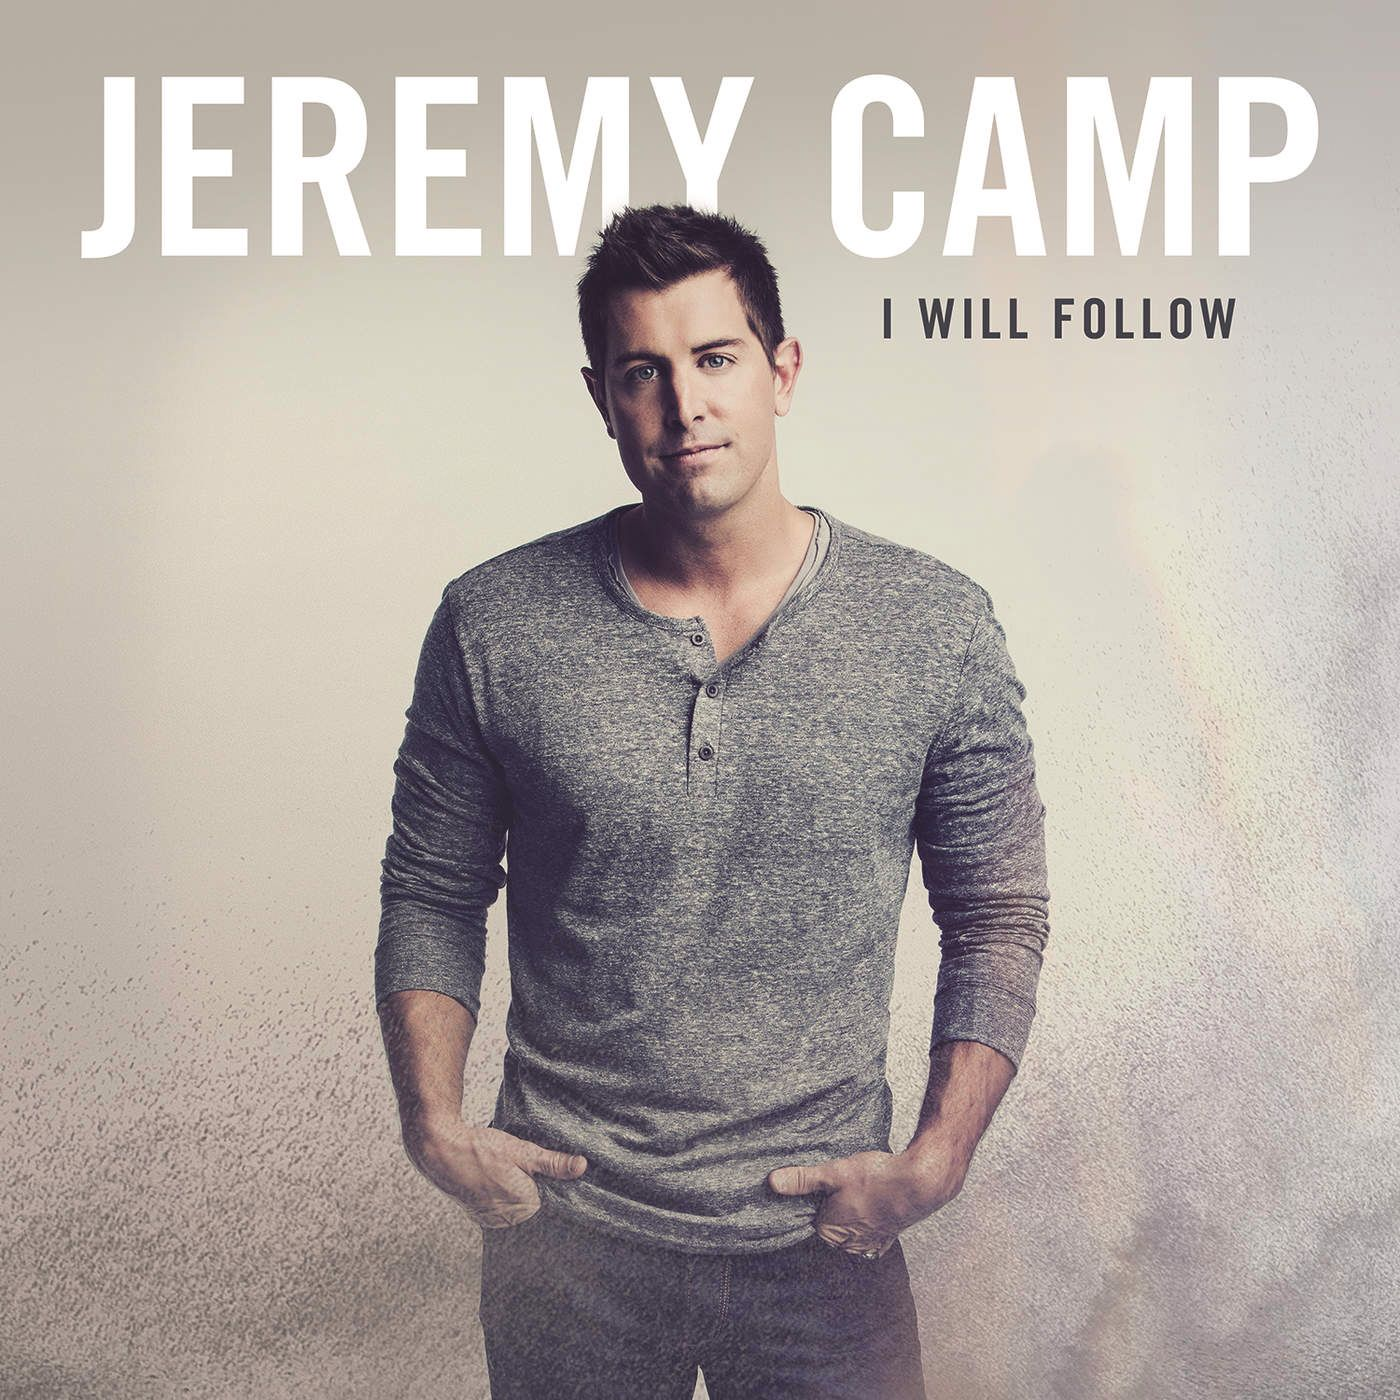 I'm listening to Same Power by Jeremy Camp in my